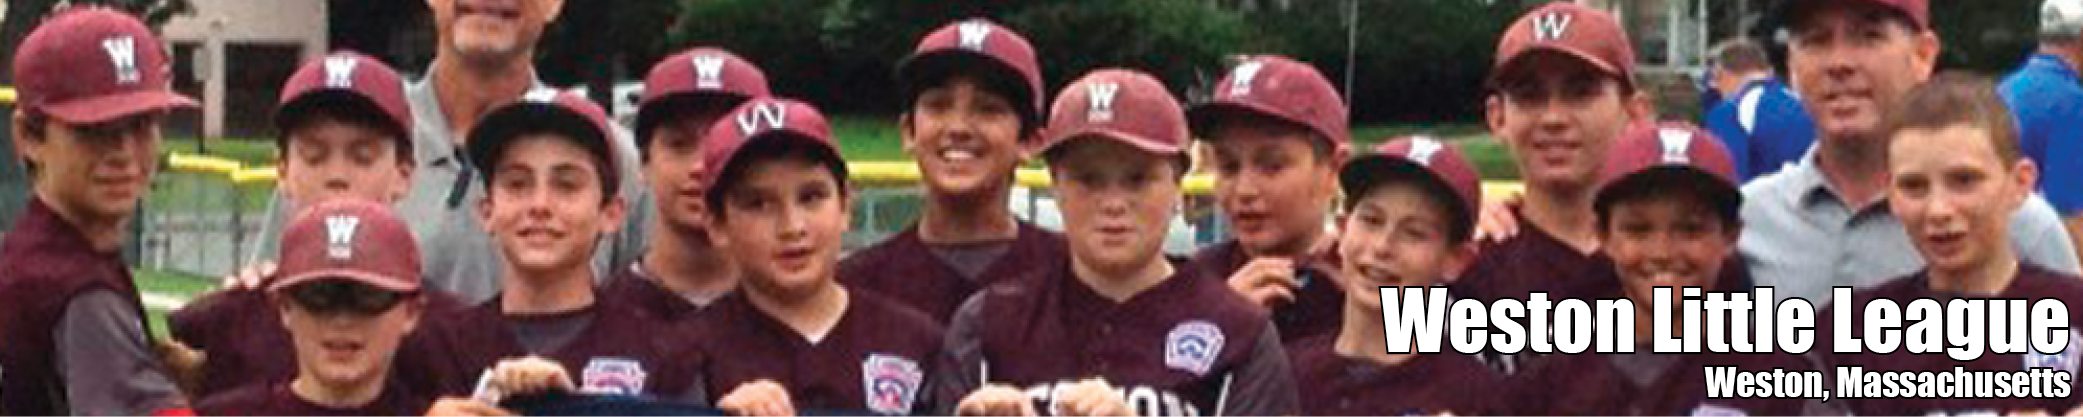 Weston Little League, Baseball, Run, Field